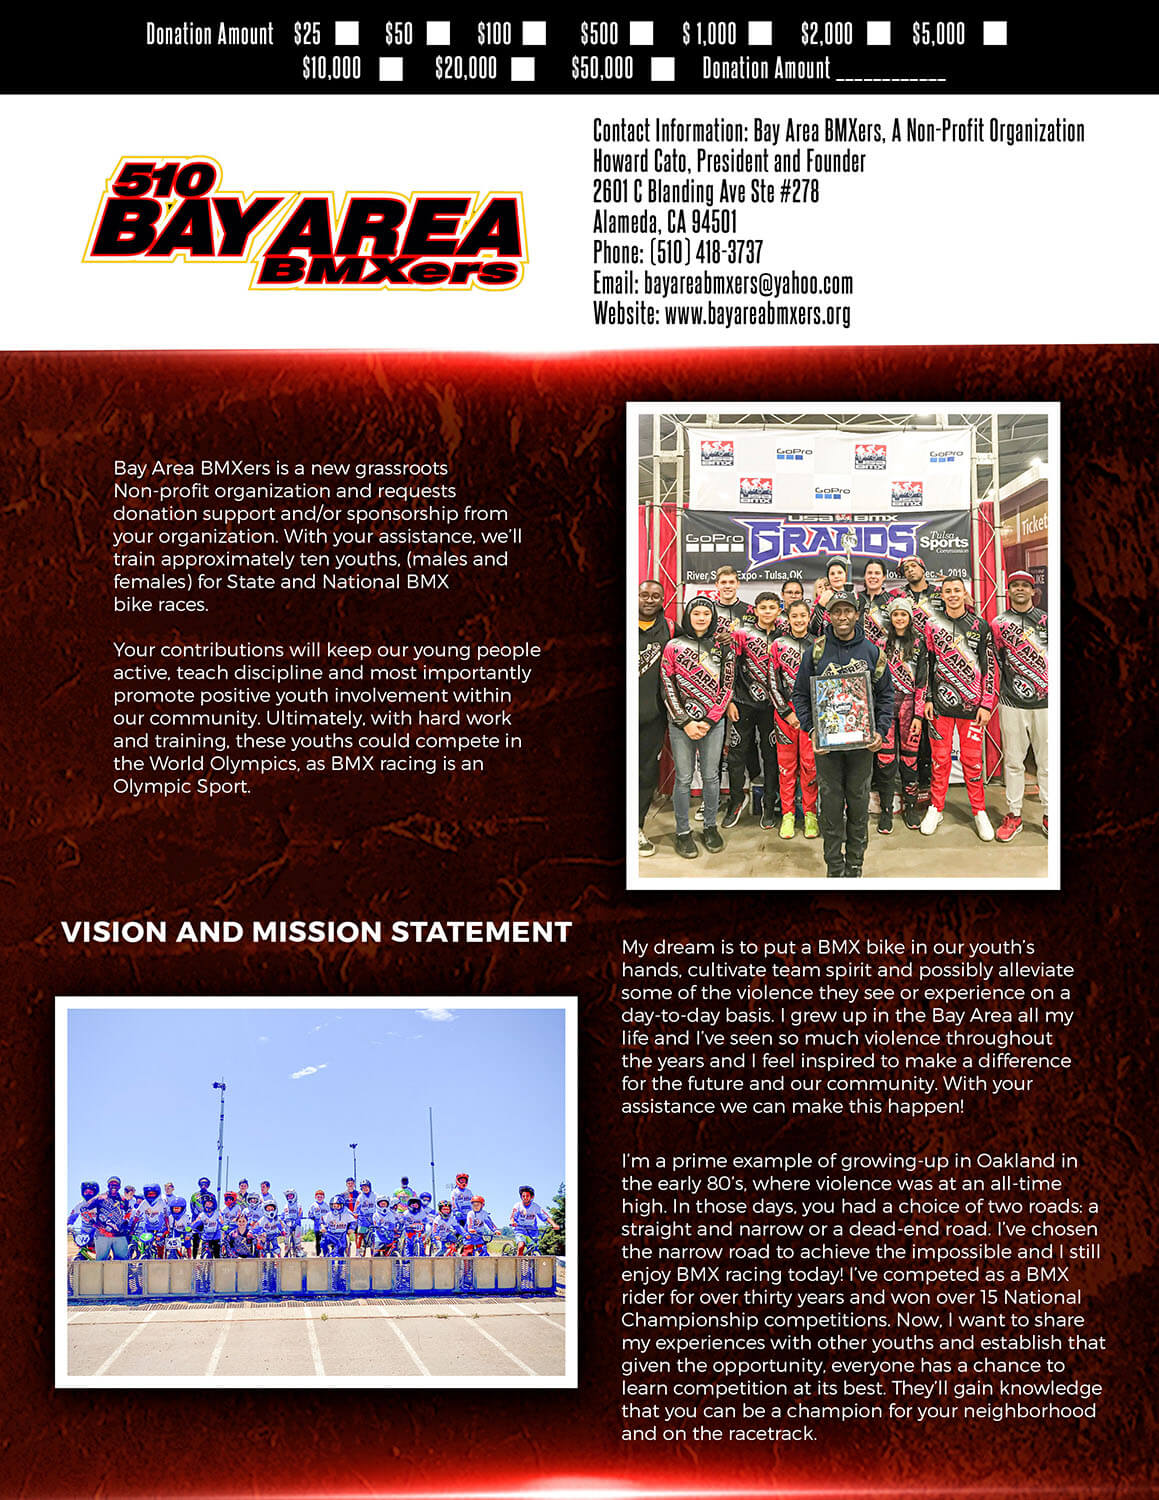 Bay Area BMXers sponsors and donations flyer